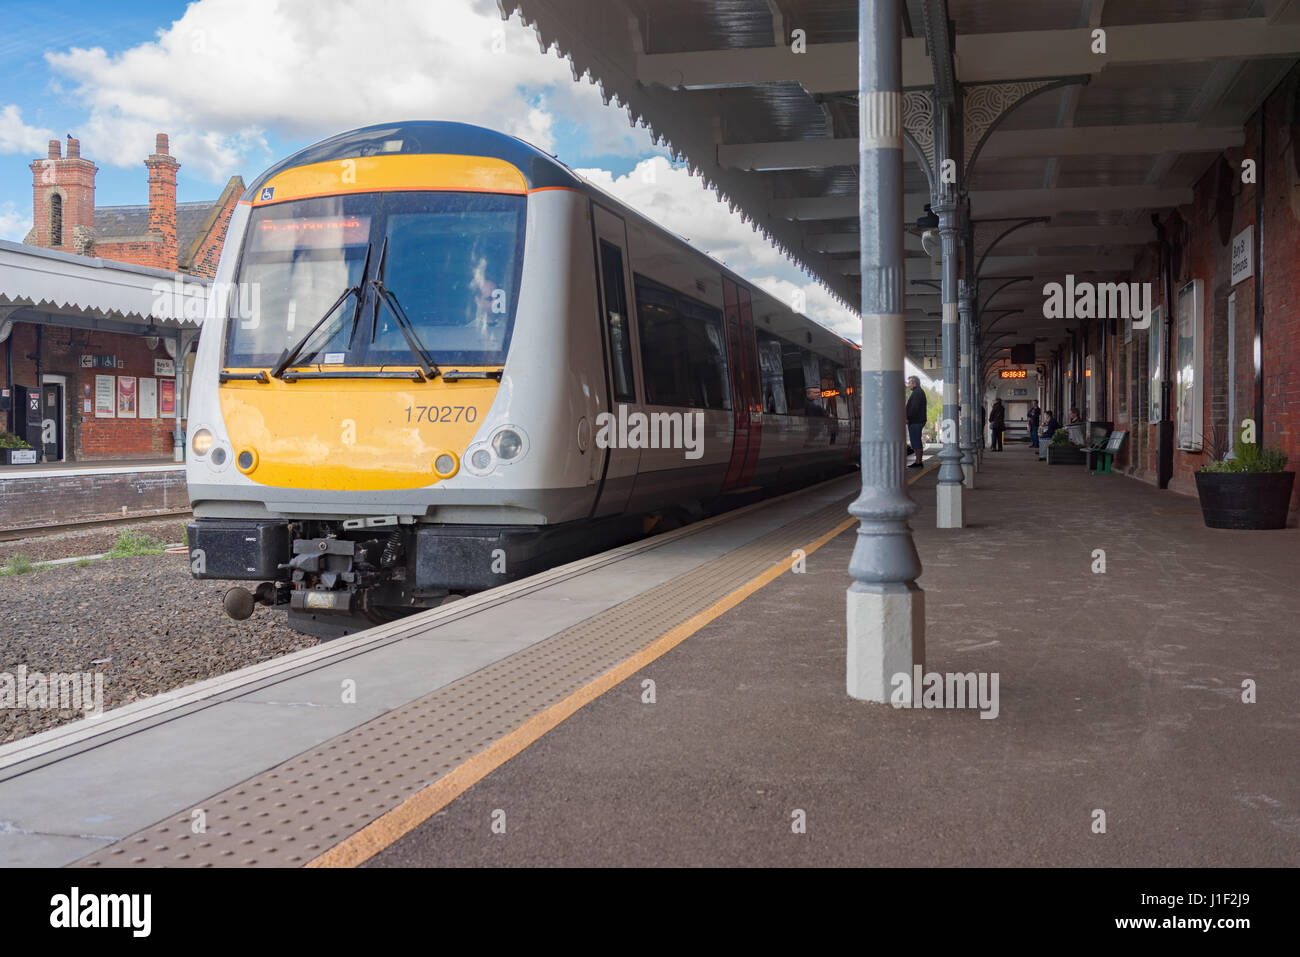 Class 170 DMU train at Bury St Edmunds Station in Suffolk, UK. - Stock Image